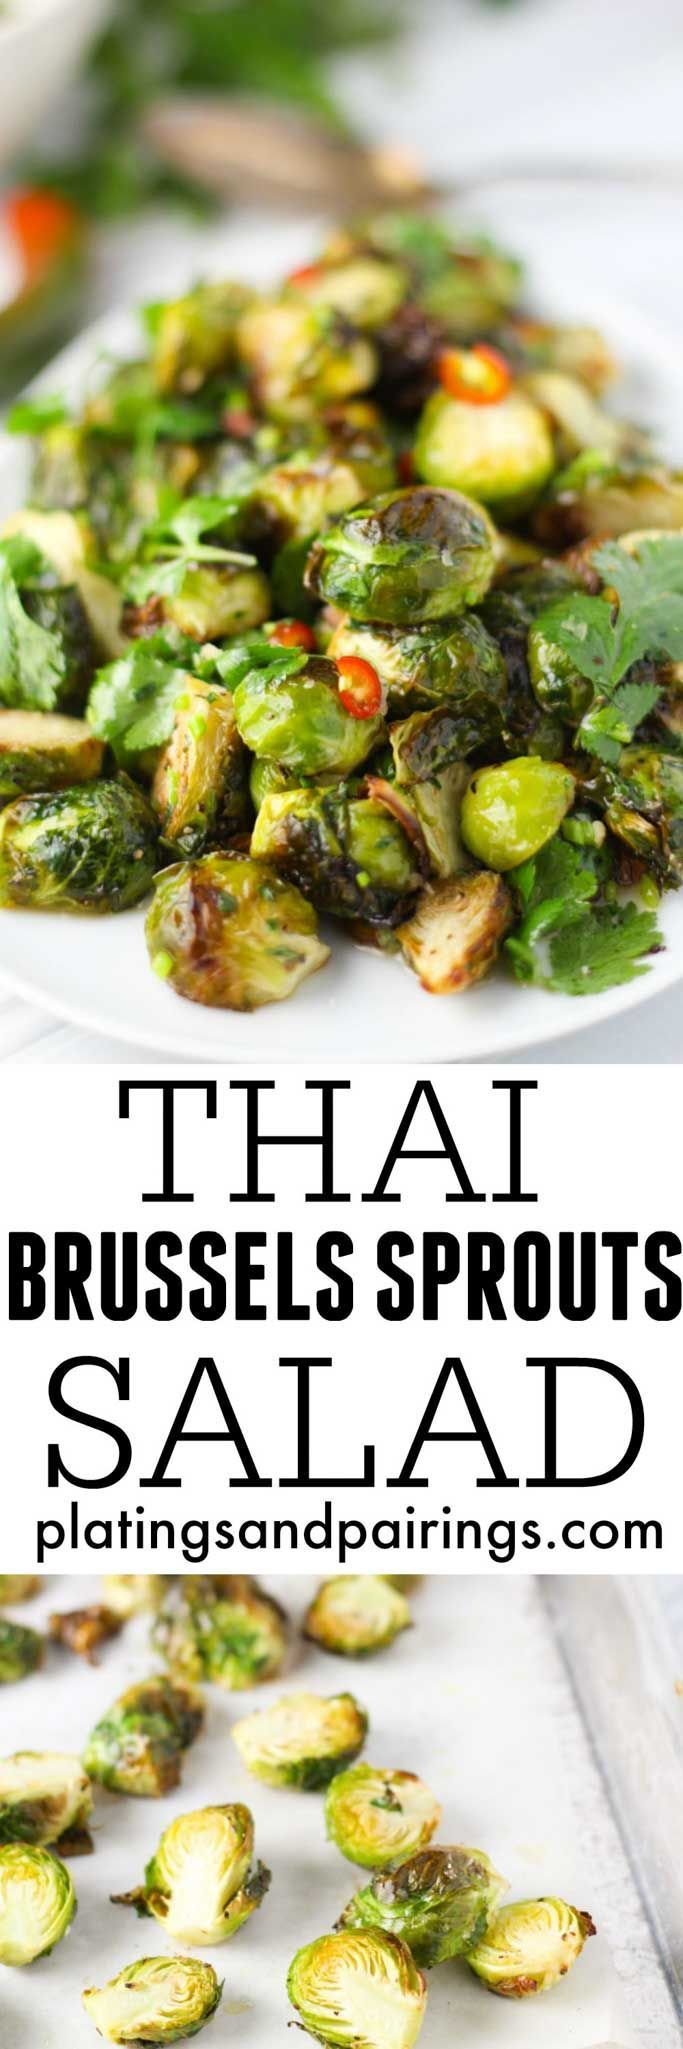 Thai Brussel Sprouts tossed in a Thai-Style Vinaigrette made with Fish Sauce, Mint, Cilantro and Thai Chiles